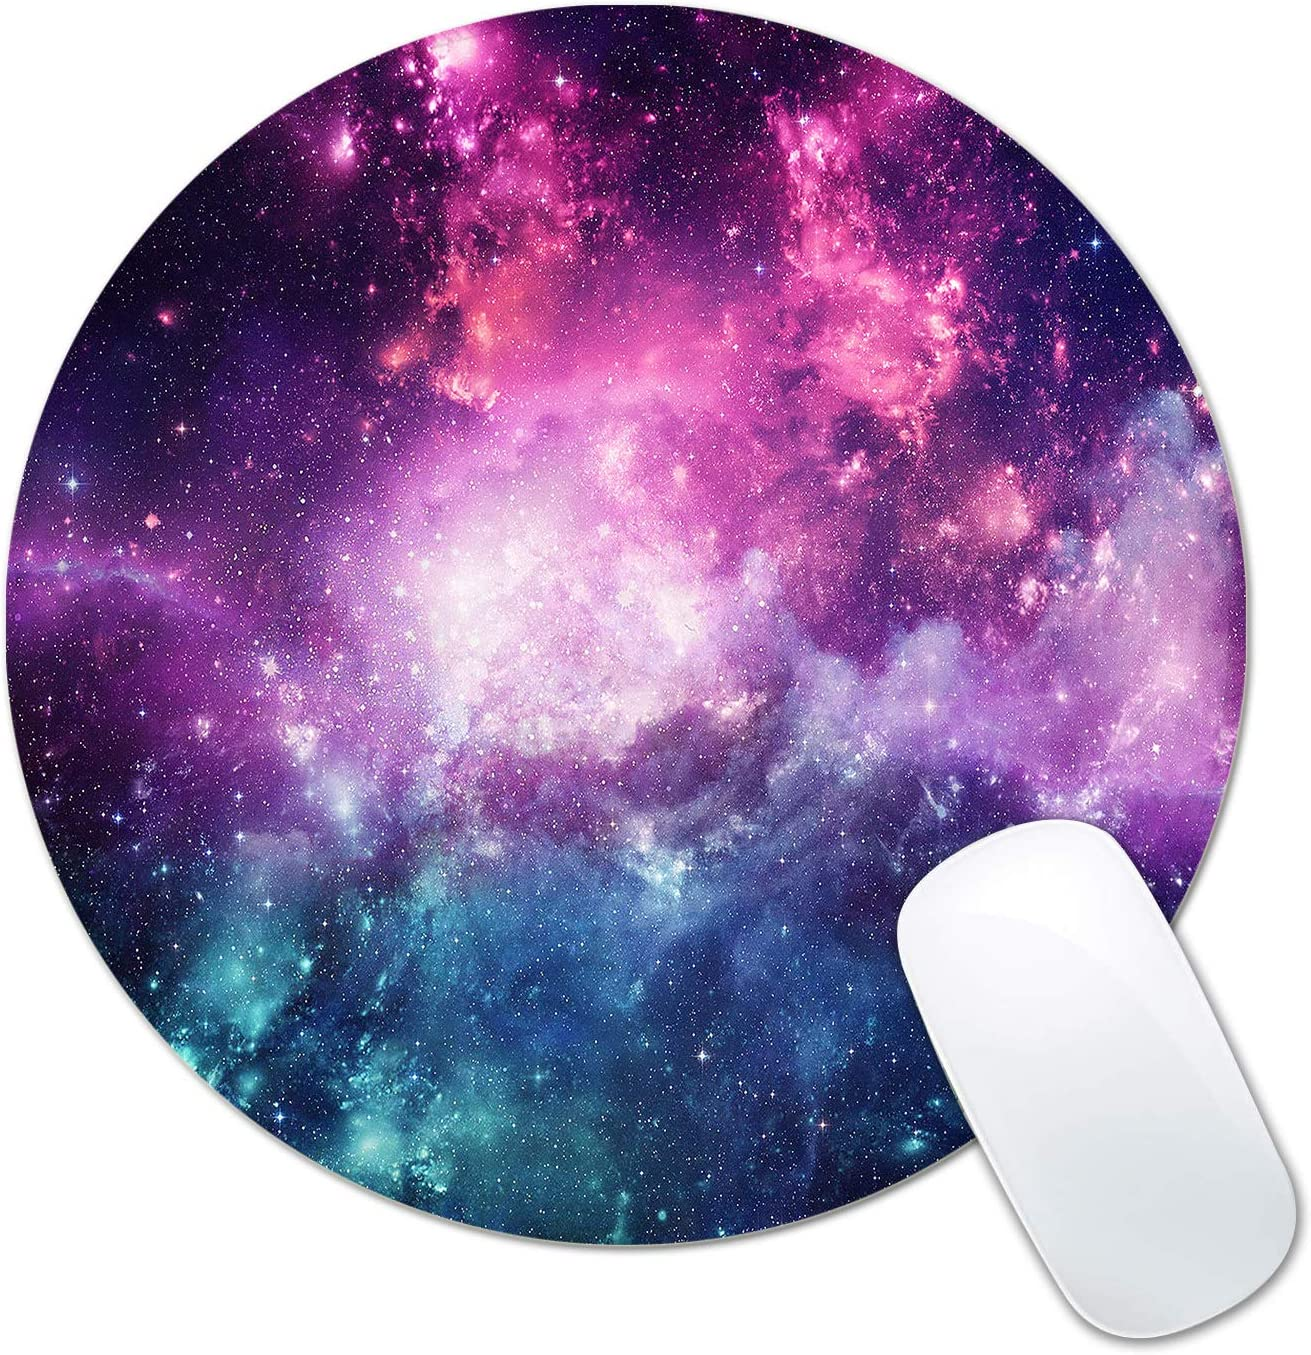 sold out LINARTS Mouse pad Design Computer 35% OFF Personalized